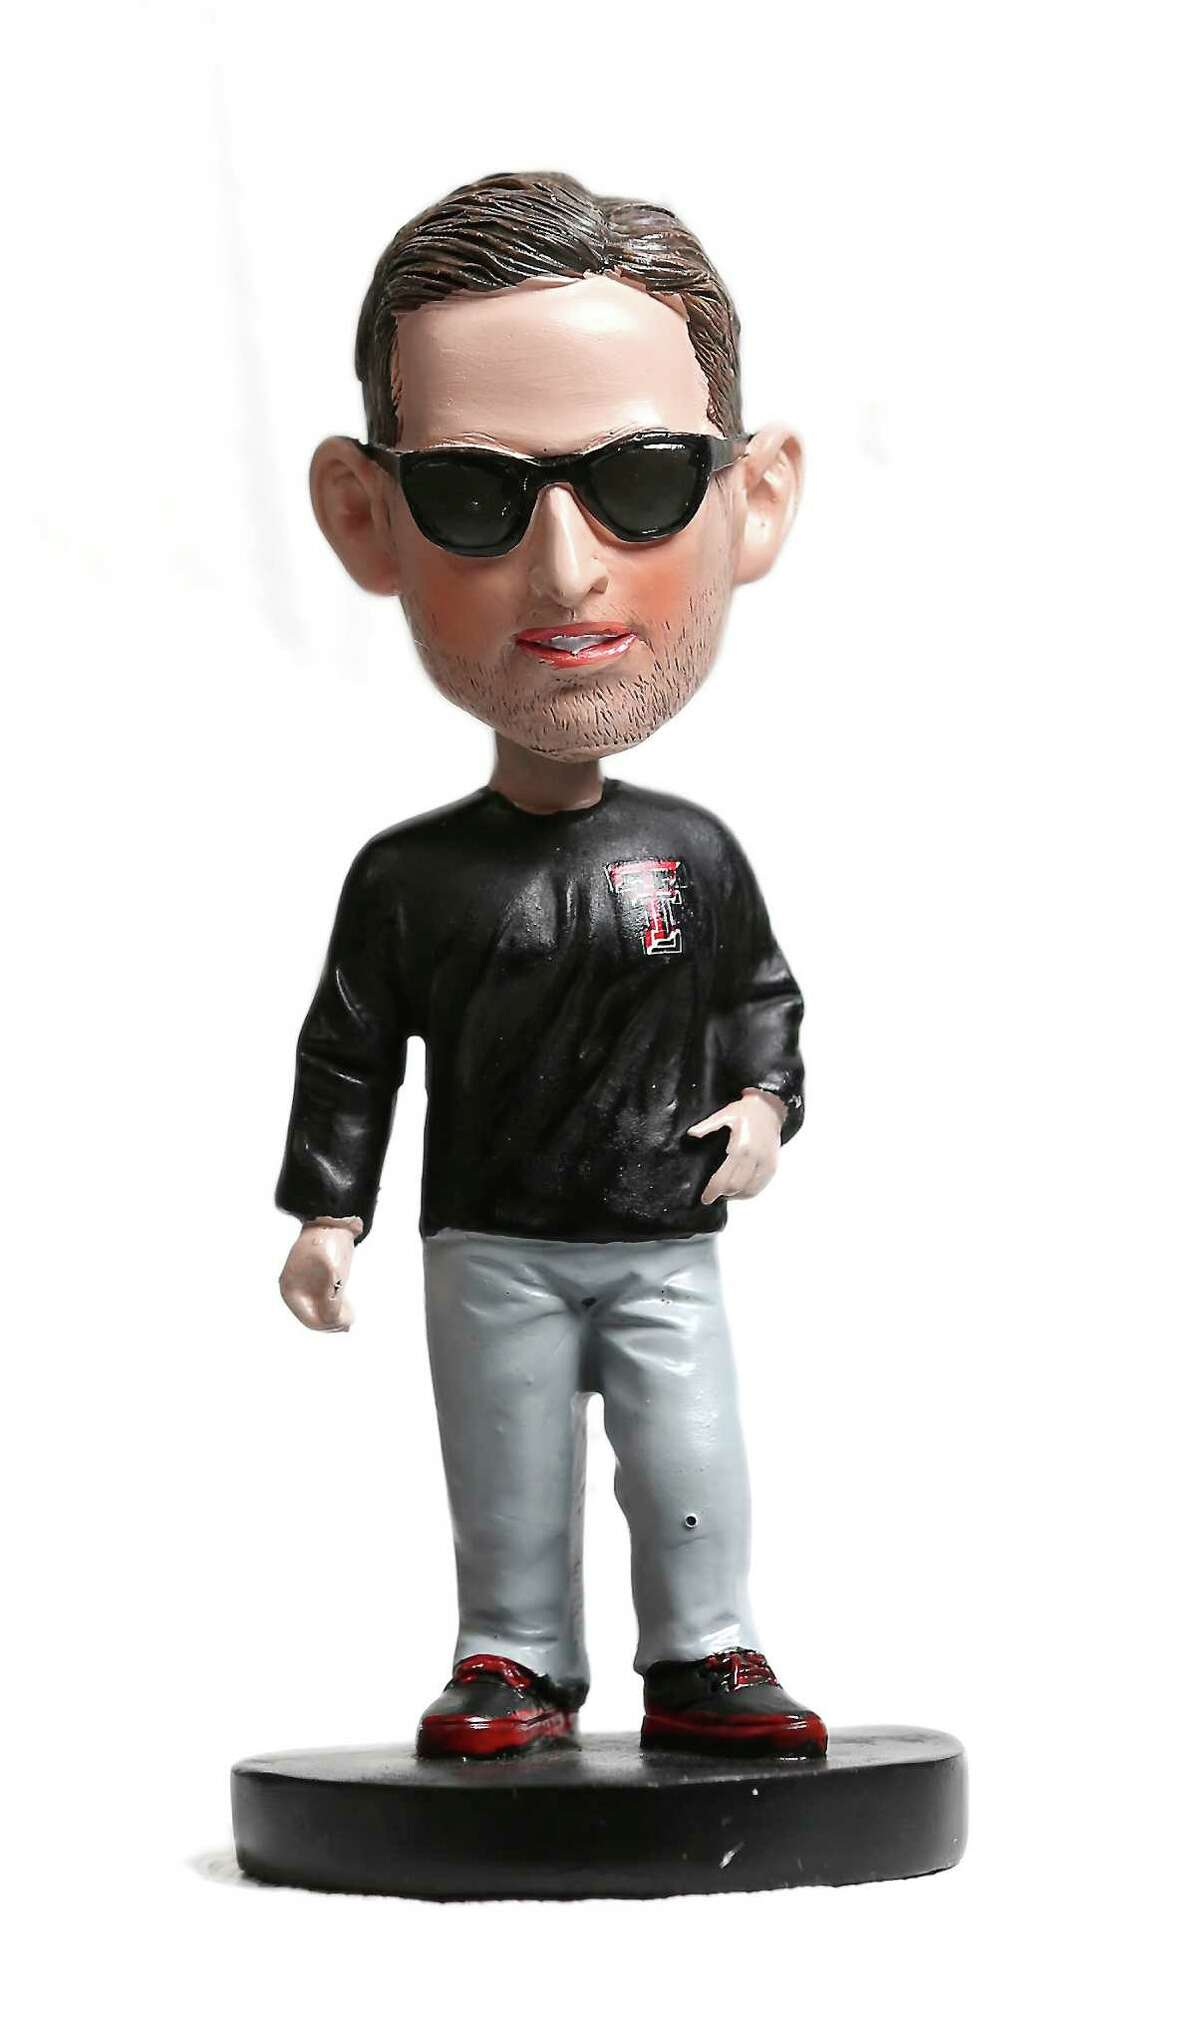 A recently released 2013 bobble-head doll of Texas Tech head coach Kliff Kingsbury is seen in the Express-News studio Oct. 24, 2013. Kingsbury, who's alma mater is Texas Tech, is currently 7-1 as the first-year coach of the Red Raiders.